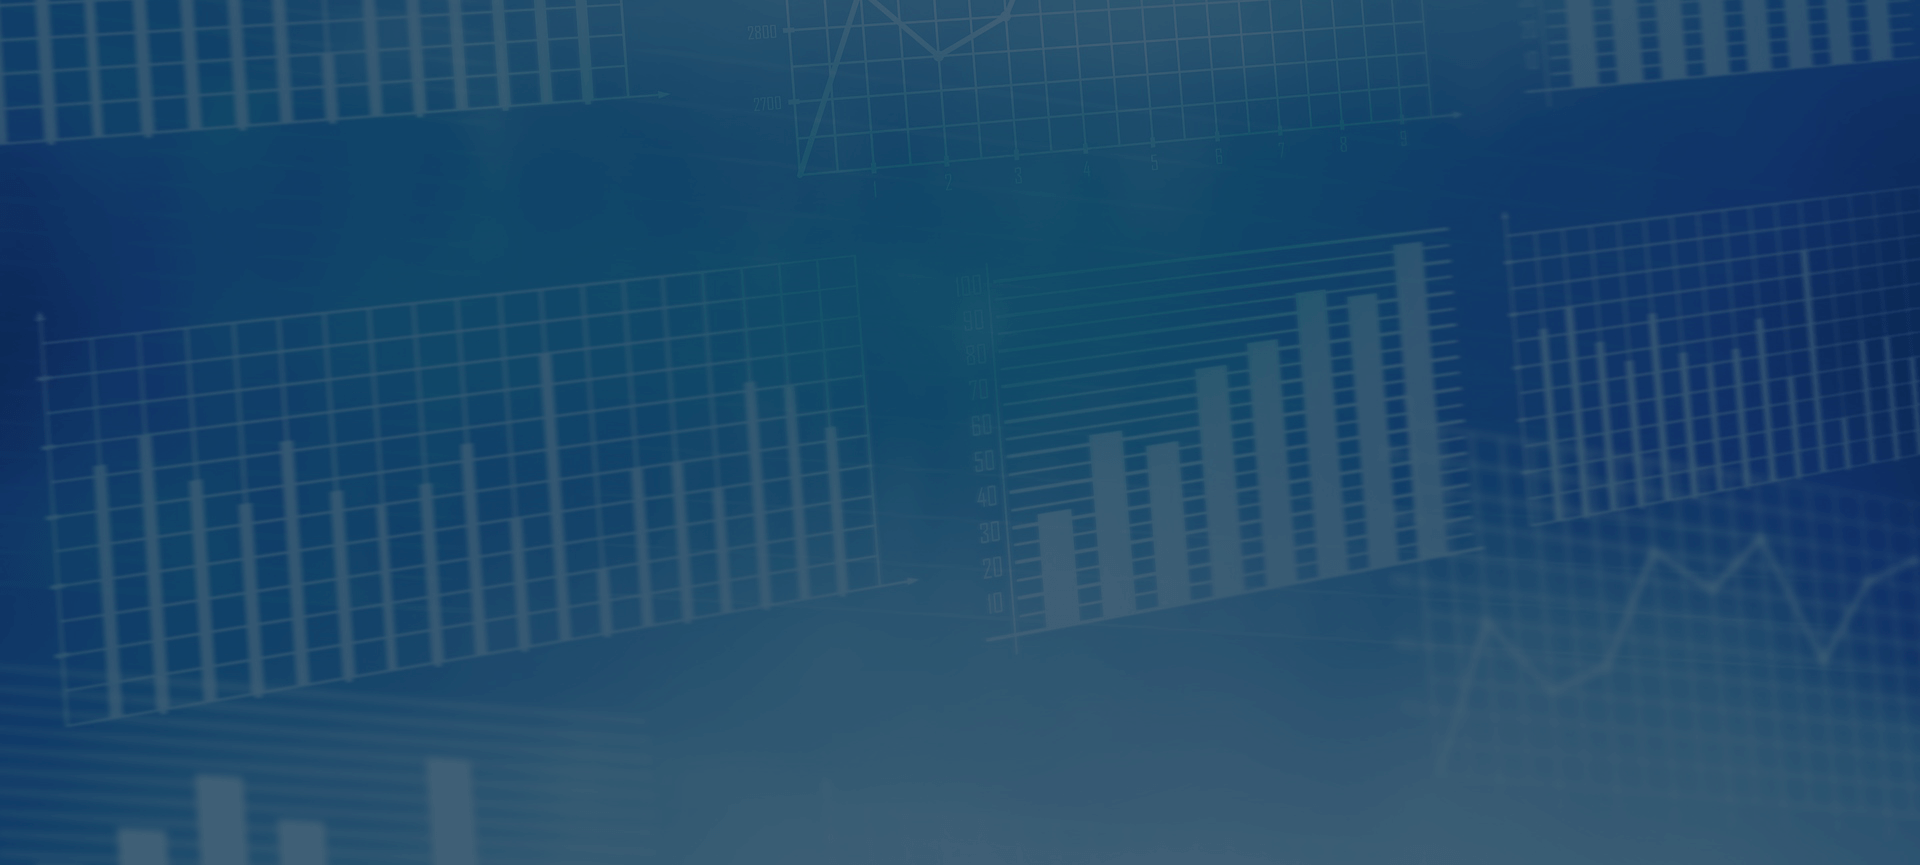 Graphs background